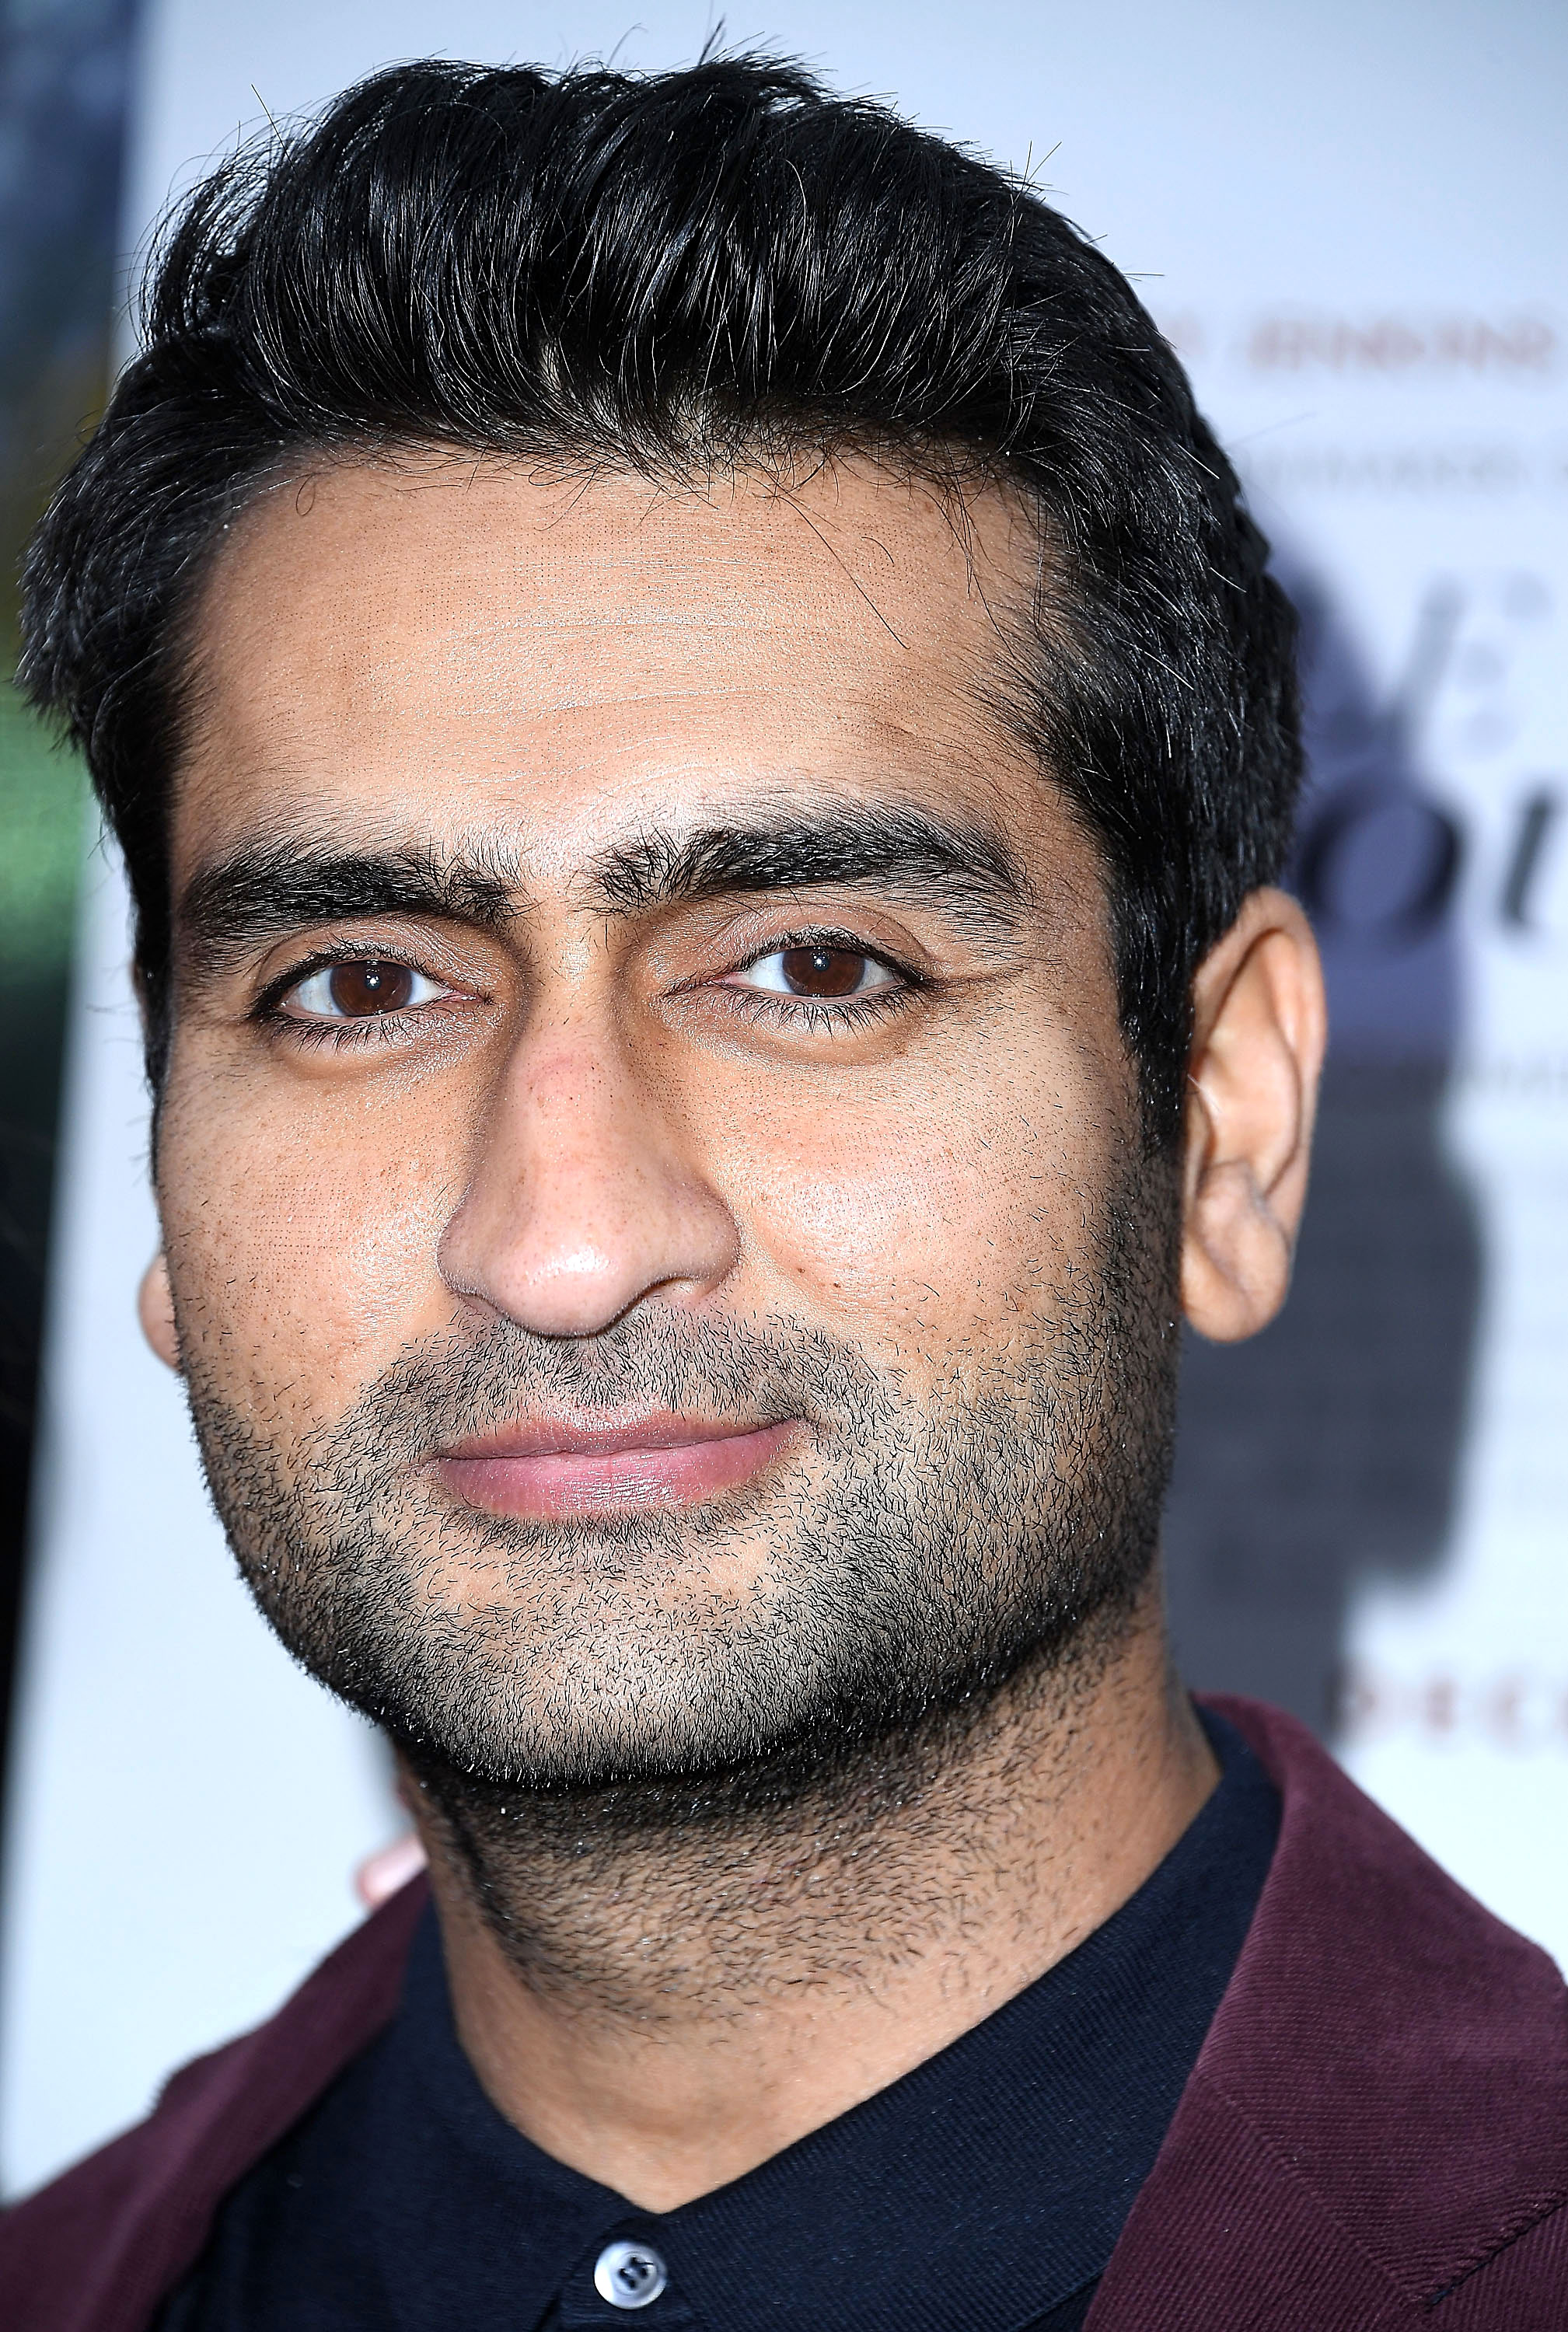 """Every Celeb Appearing on the New 'Twilight Zone' Kumail Nanjiani - In the first episode, titled """"The Comedian,"""" writer and actor Kumail Nanjiani stars as a struggling comic who makes a dark (both figuratively and quite literally) deal with a legend, played by Tracy Morgan . """"Honestly, I tried to get out of it once I read the script. I got very intimidated,"""" Nanjiani, 41, told Vanity Fair ."""